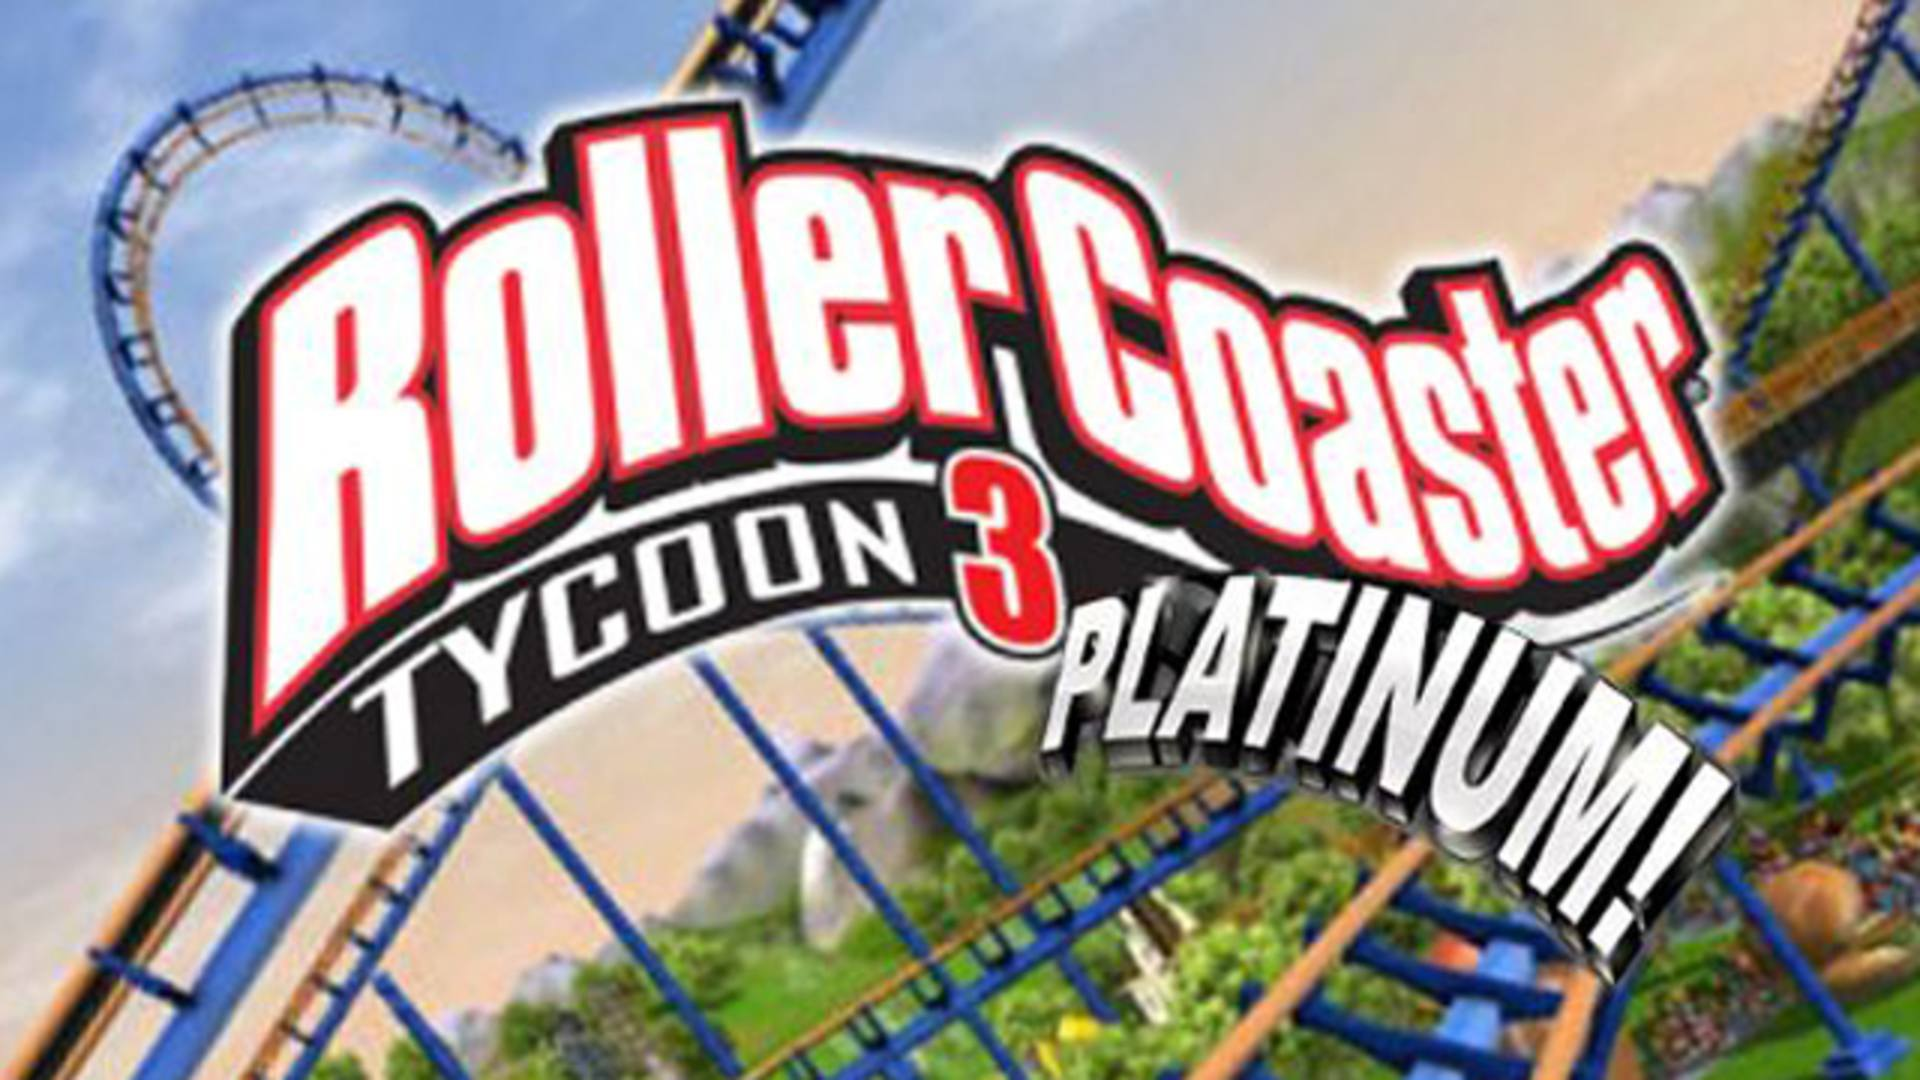 Image result for Roller Coaster Tycoon 3 Platinum